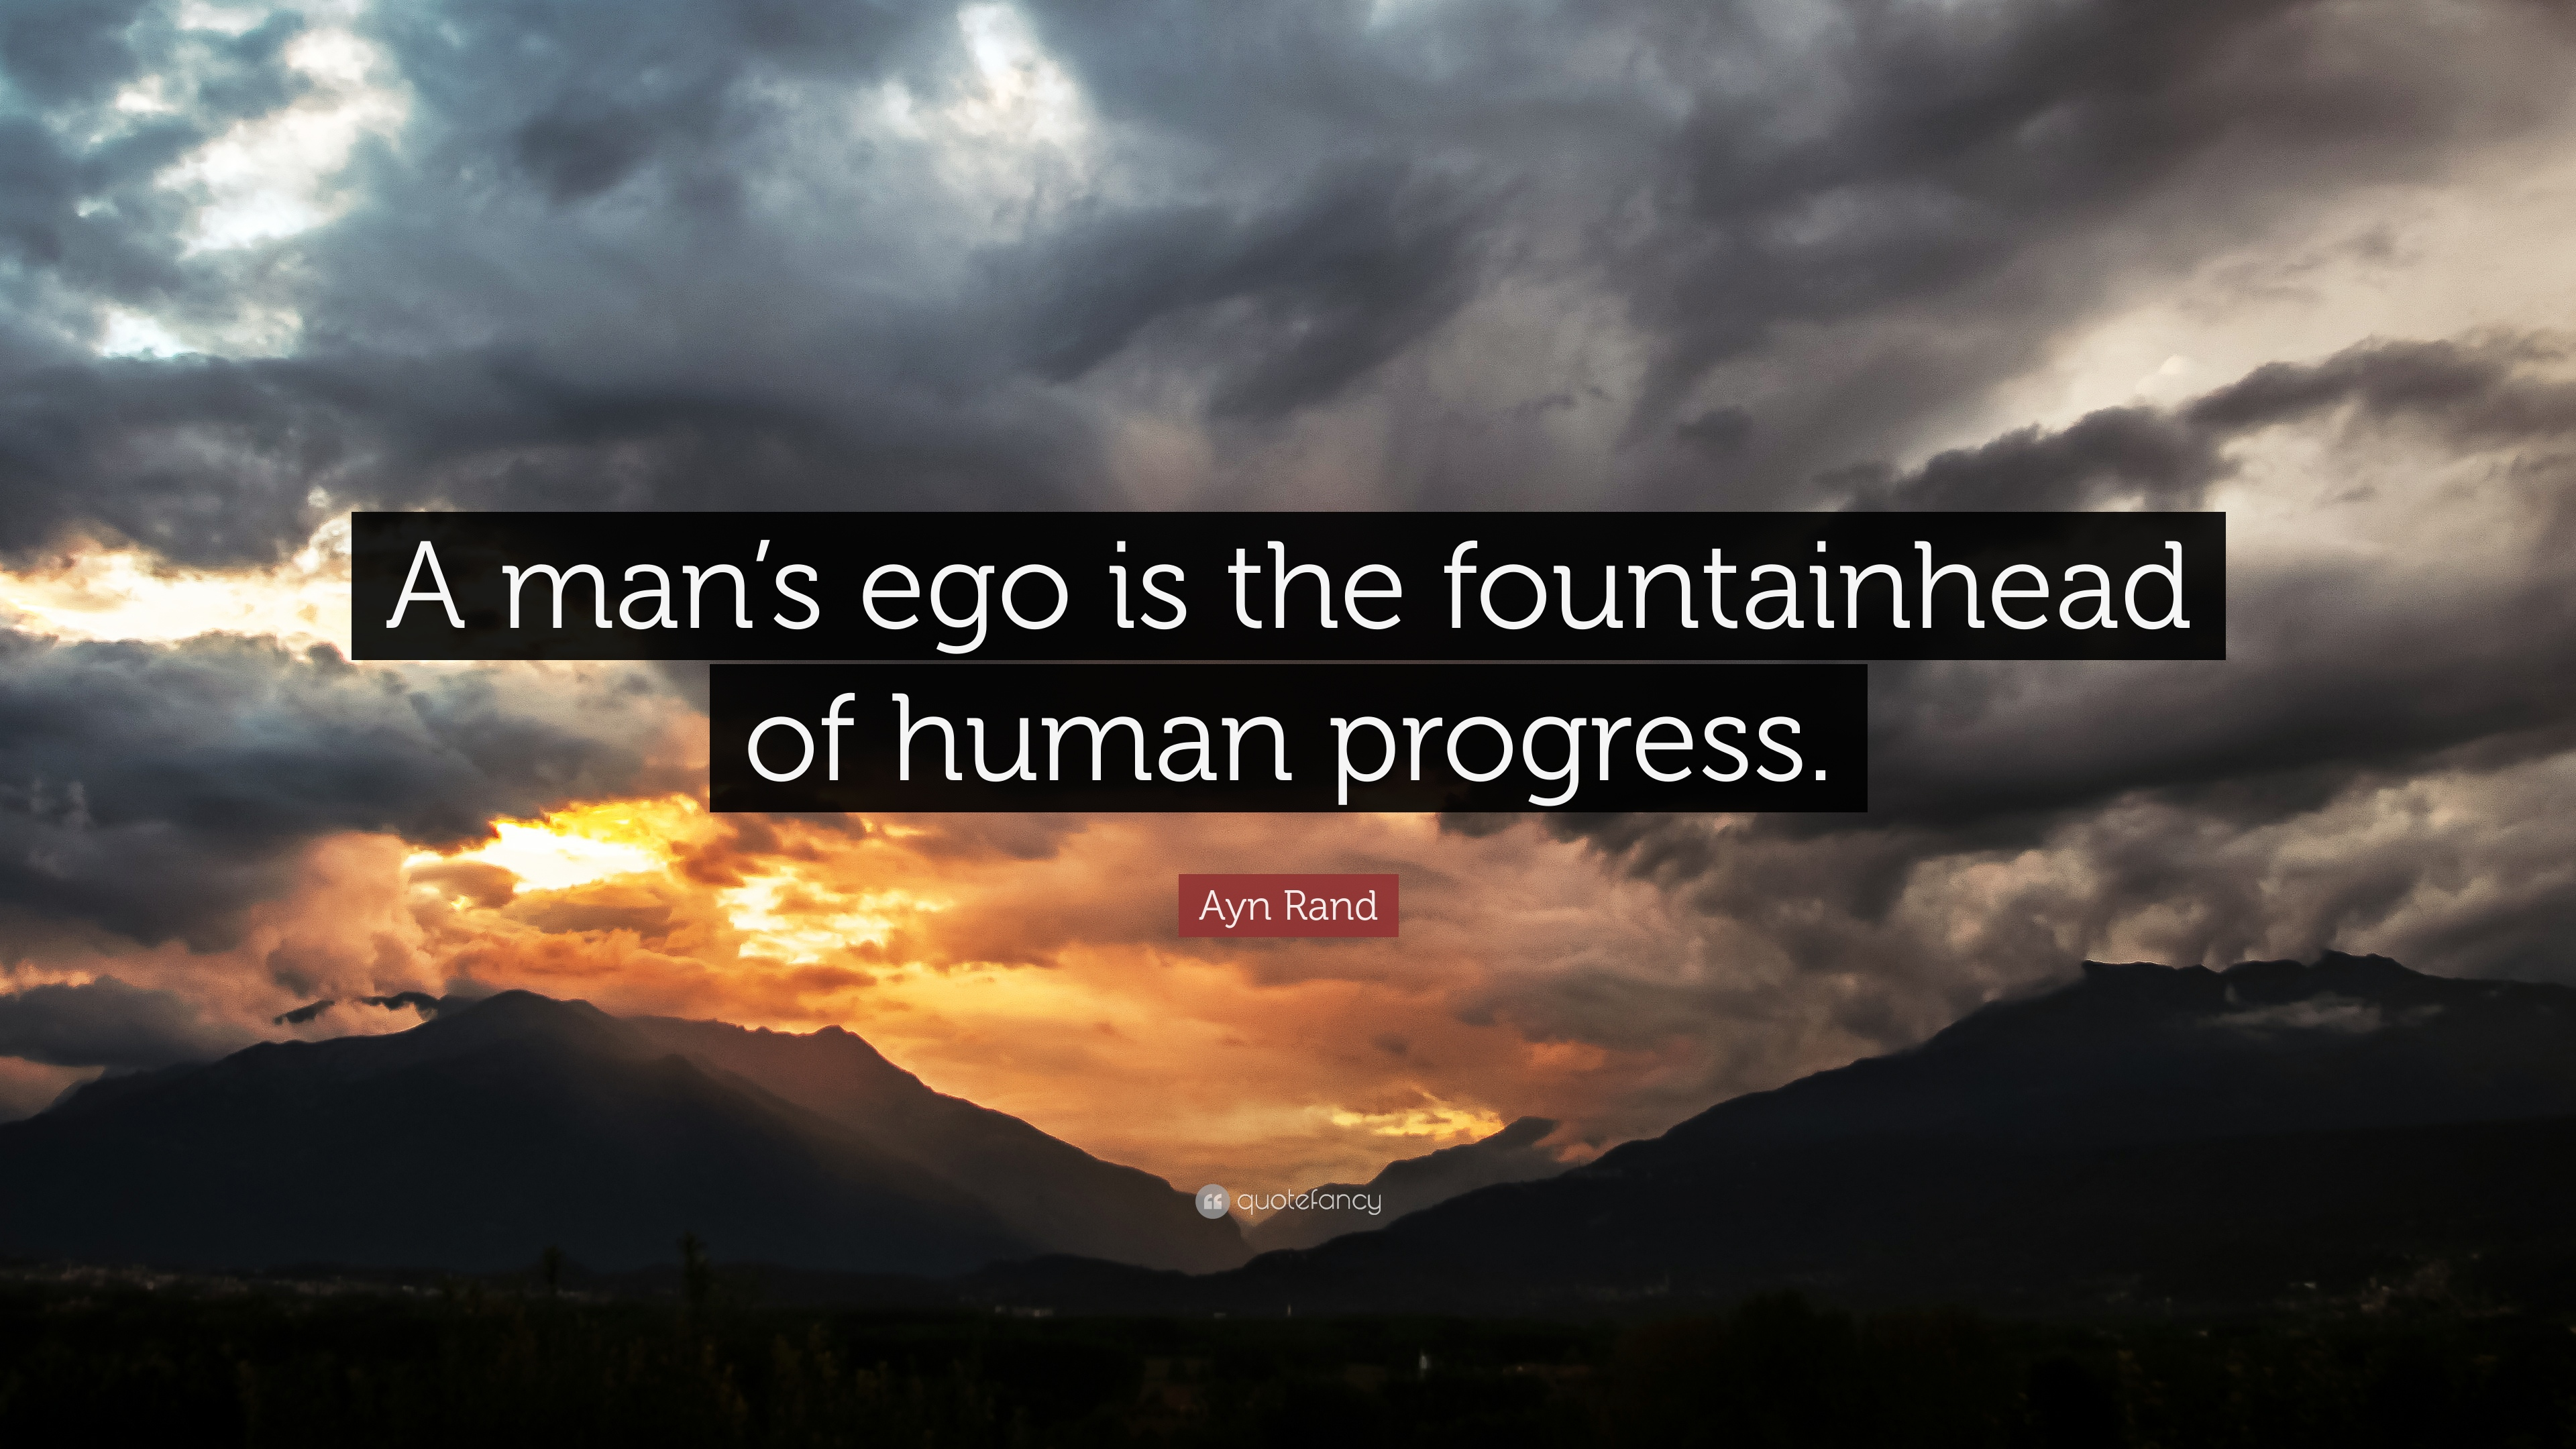 Ayn Rand Quotes (100 wallpapers) - Quotefancy